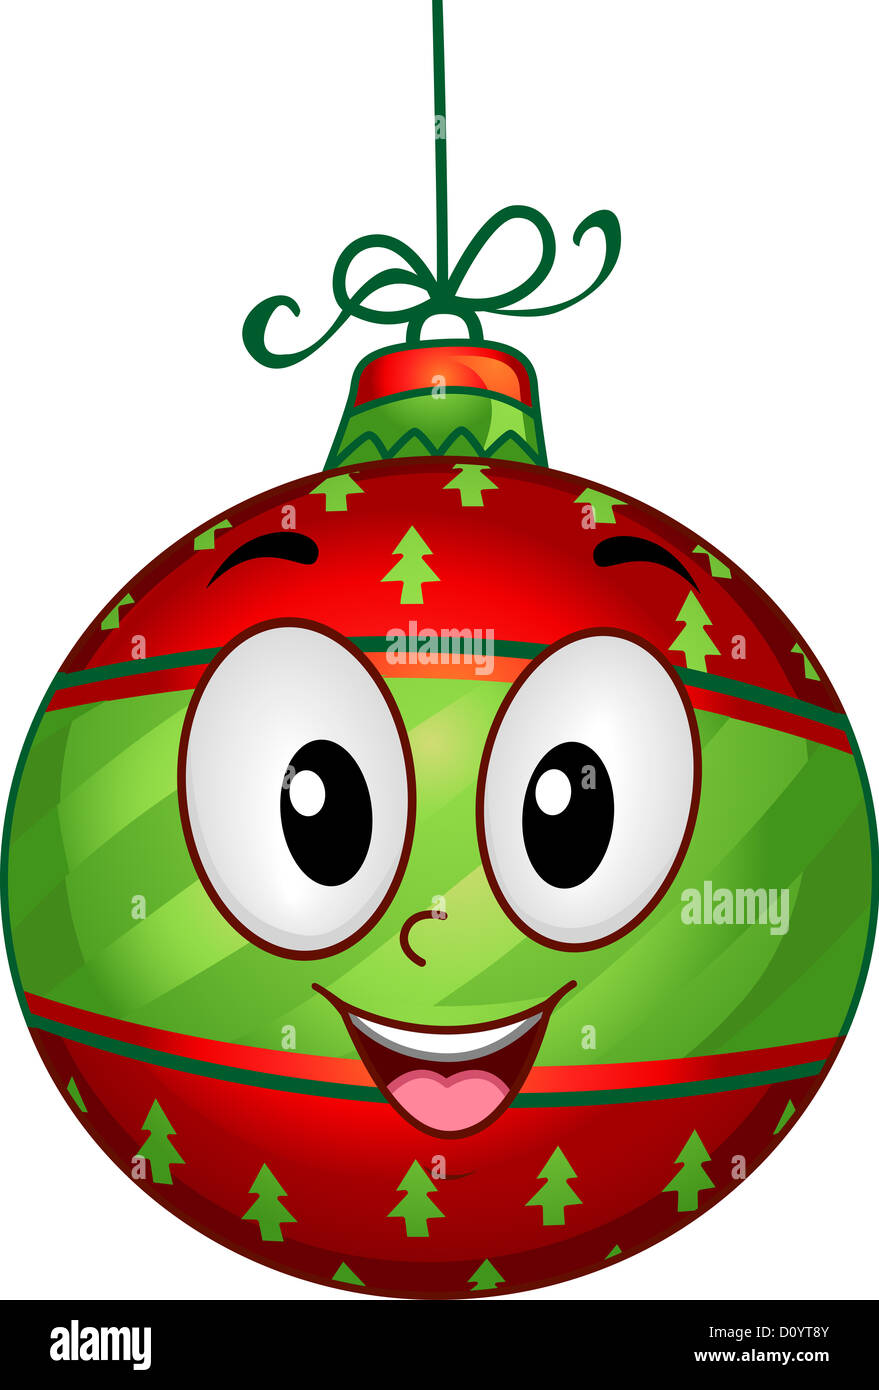 mascot-illustration-of-a-christmas-ball-beaming-happily-D0YT8Y.jpg